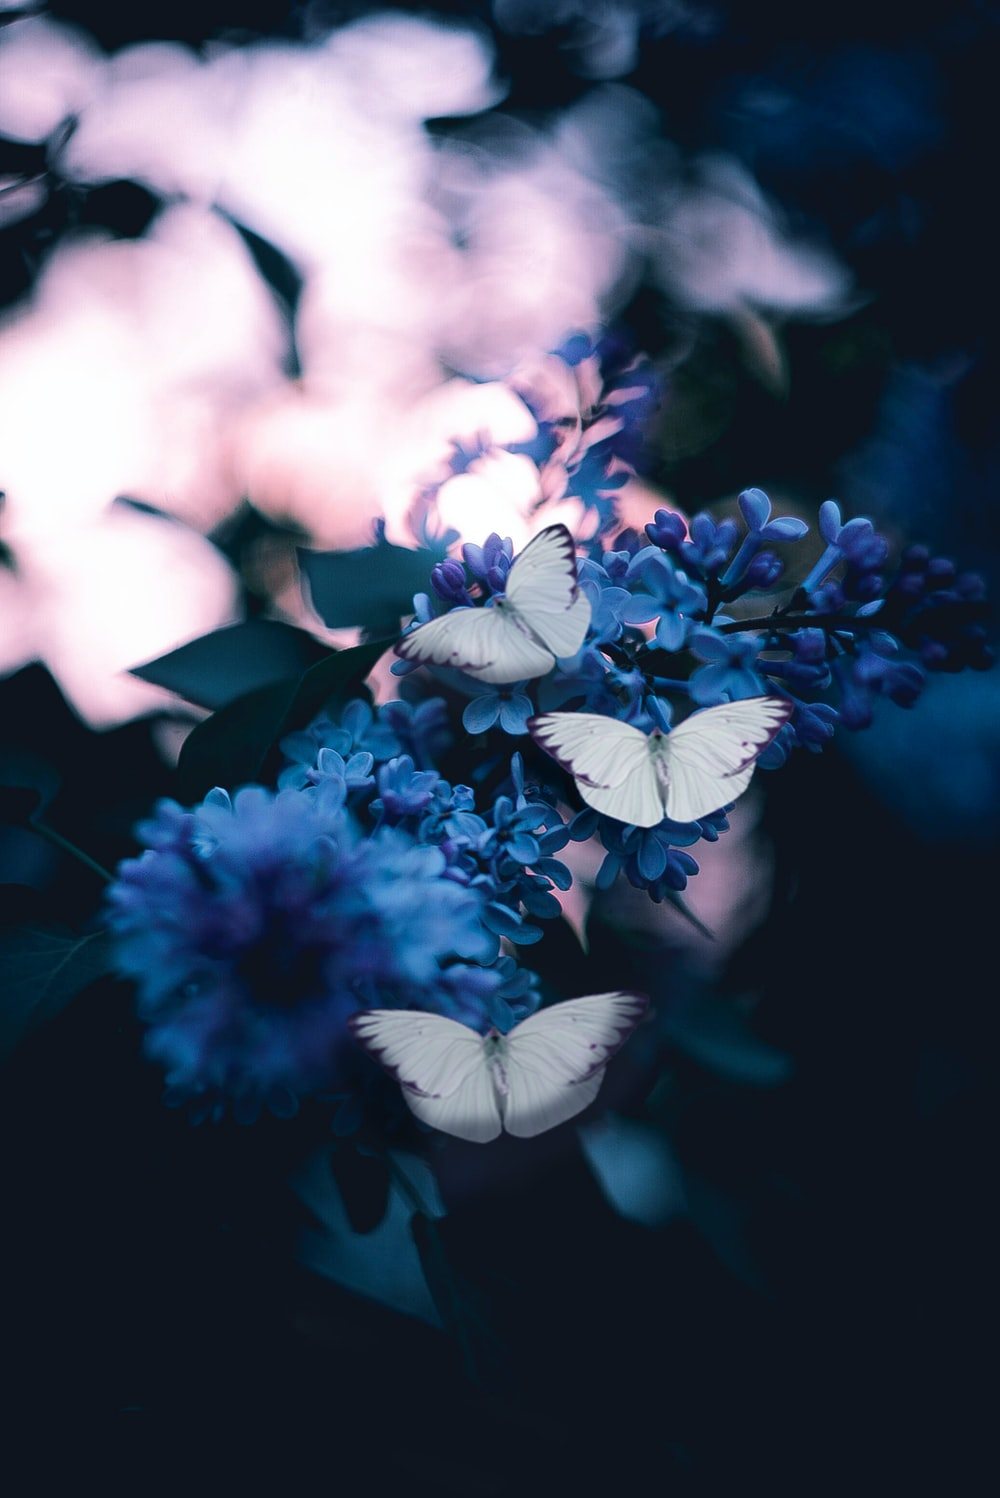 Butterfly Wallpapers Free Hd Download 500 Hq Unsplash